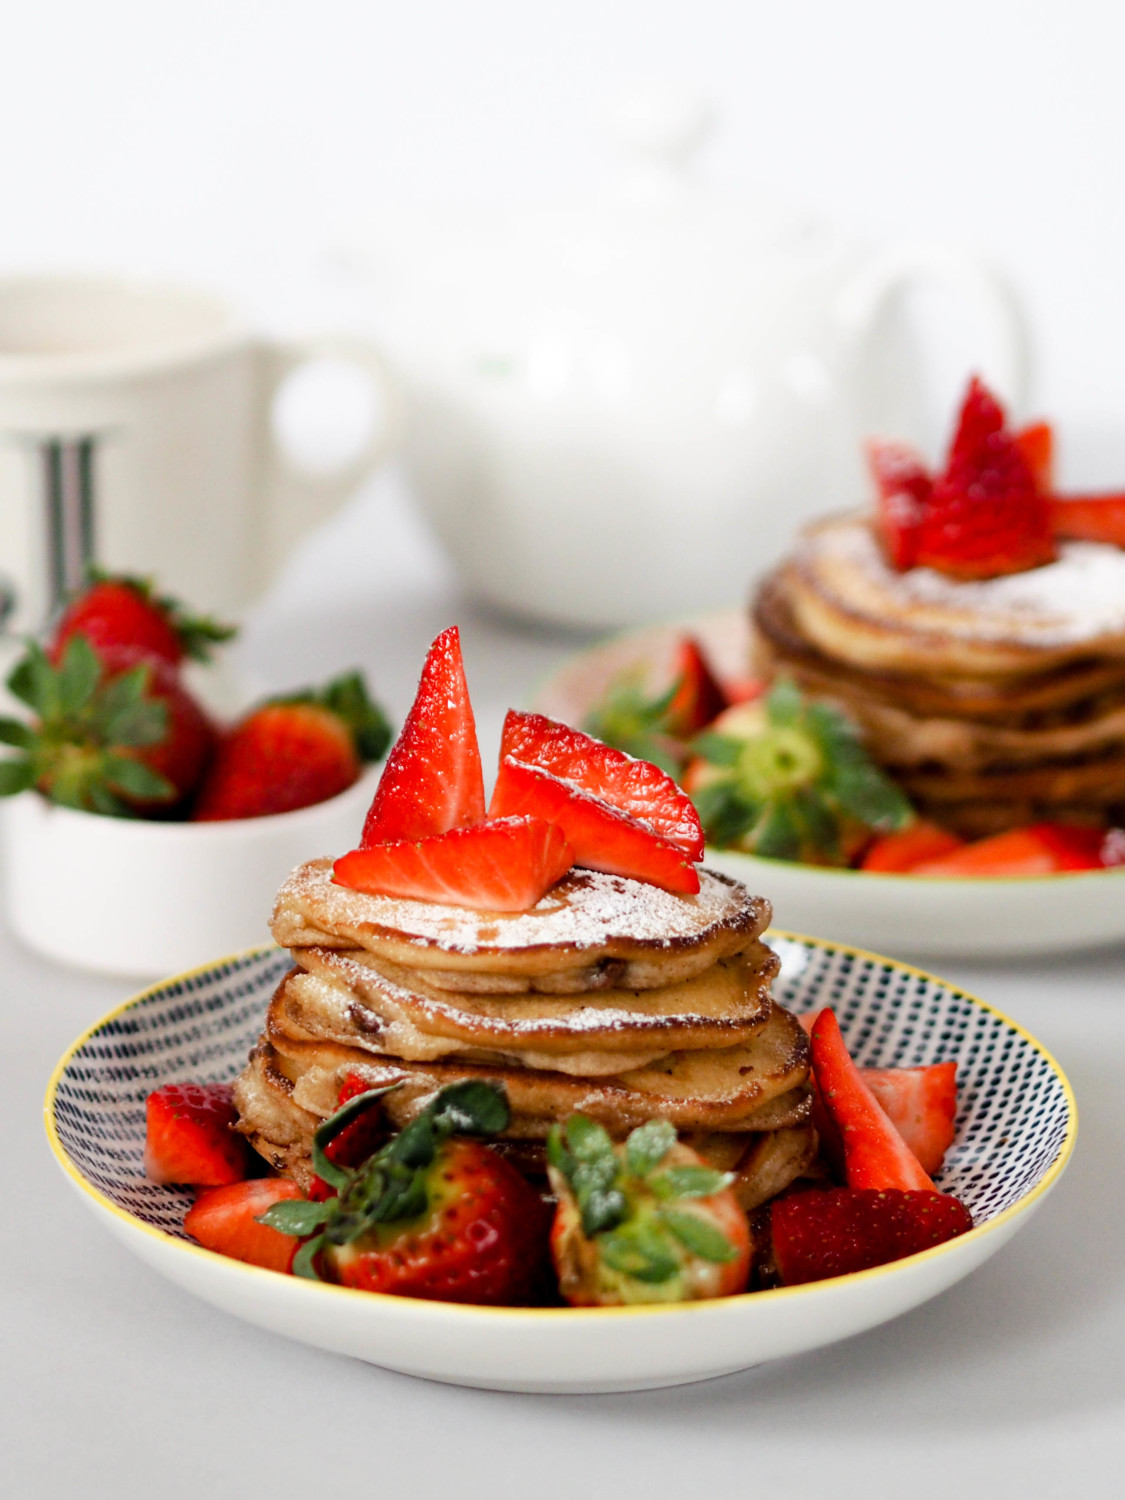 Fluffy American pancakes with chocolate chips and strawberries